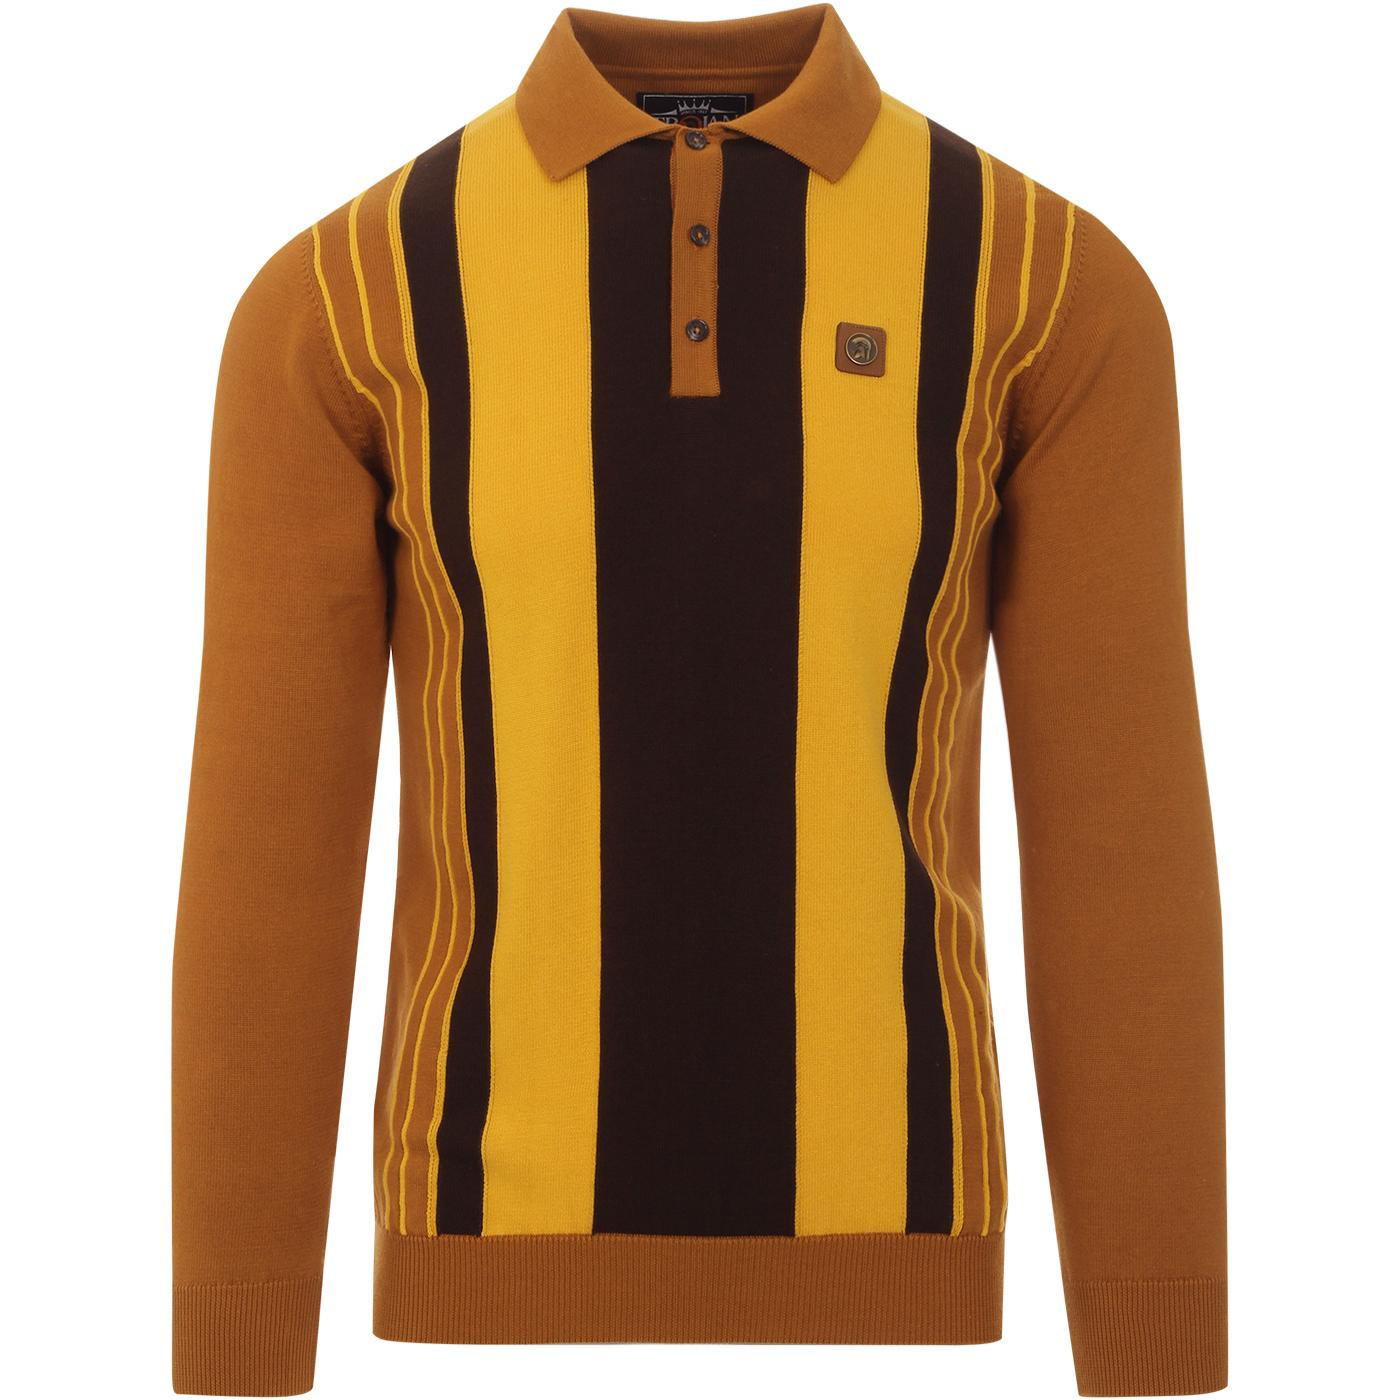 TROJAN RECORDS Mod Pinstripe Panel Knit Polo (Tan)